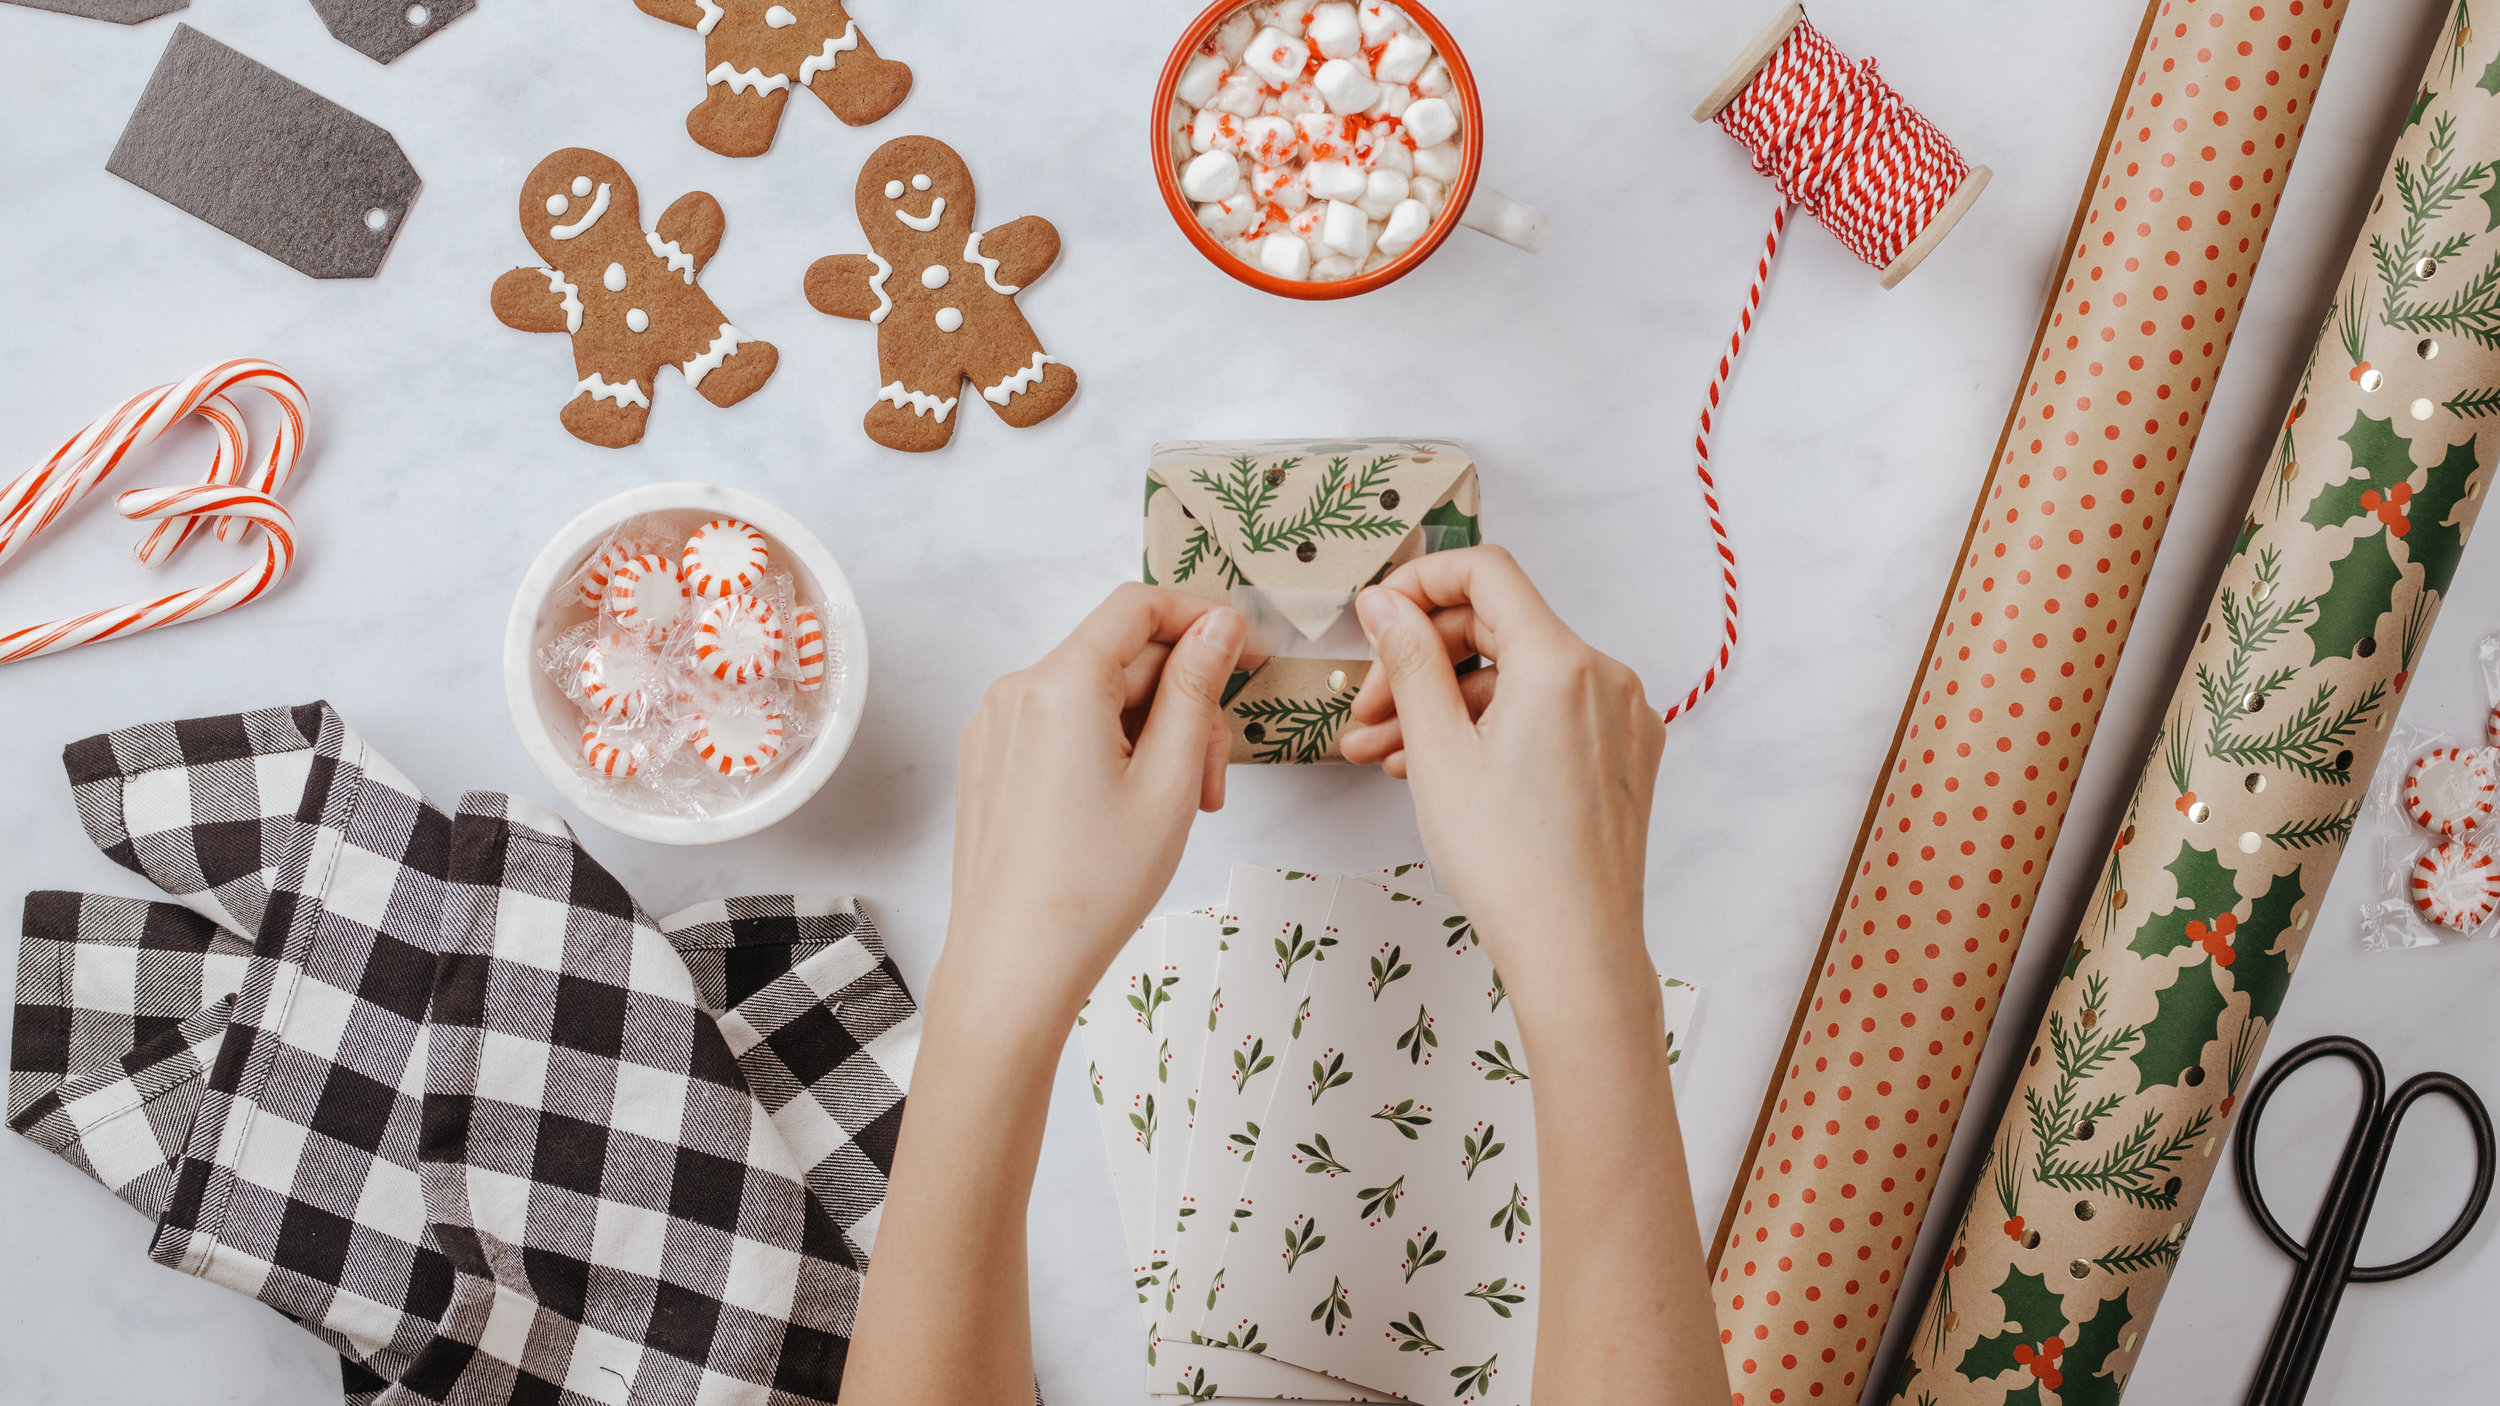 Gift-giving flatlay (flatlay layout will be customized to the Woods Christmas set - items like a plate of peppermint cookies, 2 mugs of cocoa, candy canes, mittens, ornaments, greenery, etc. will be featured.)